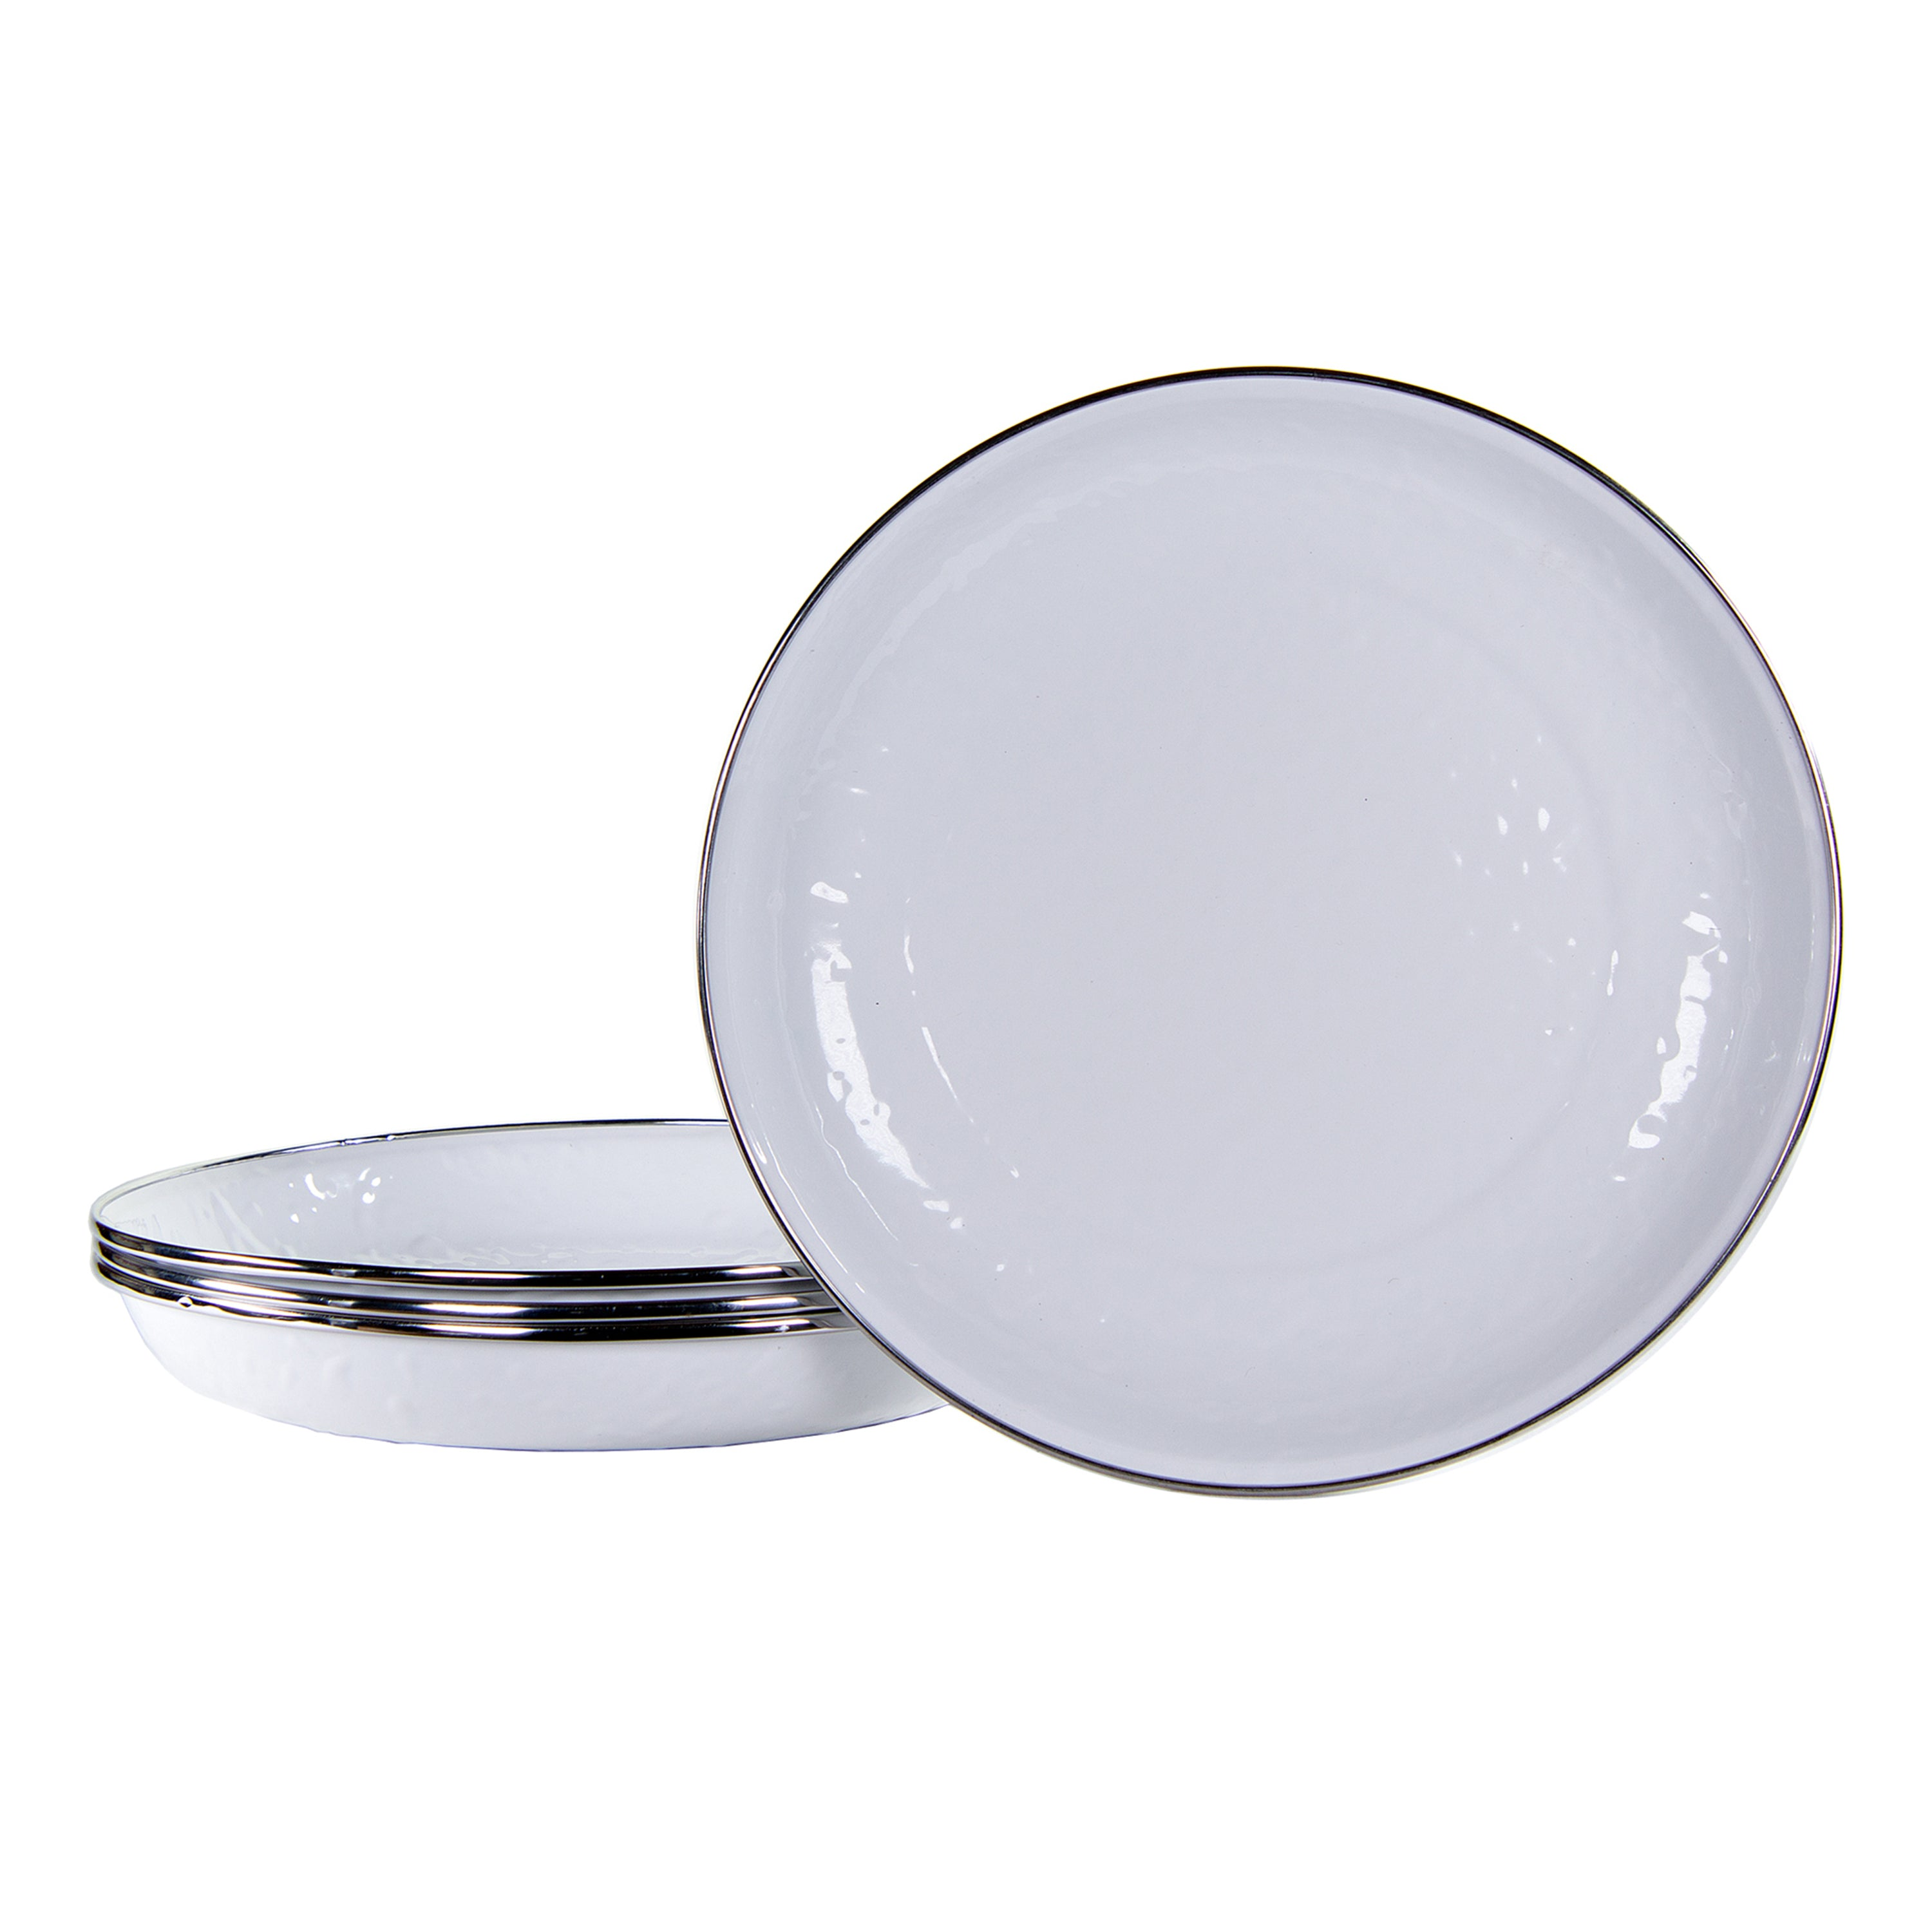 WW04S4 - Set of 4 Solid White Pasta Plates Image 1